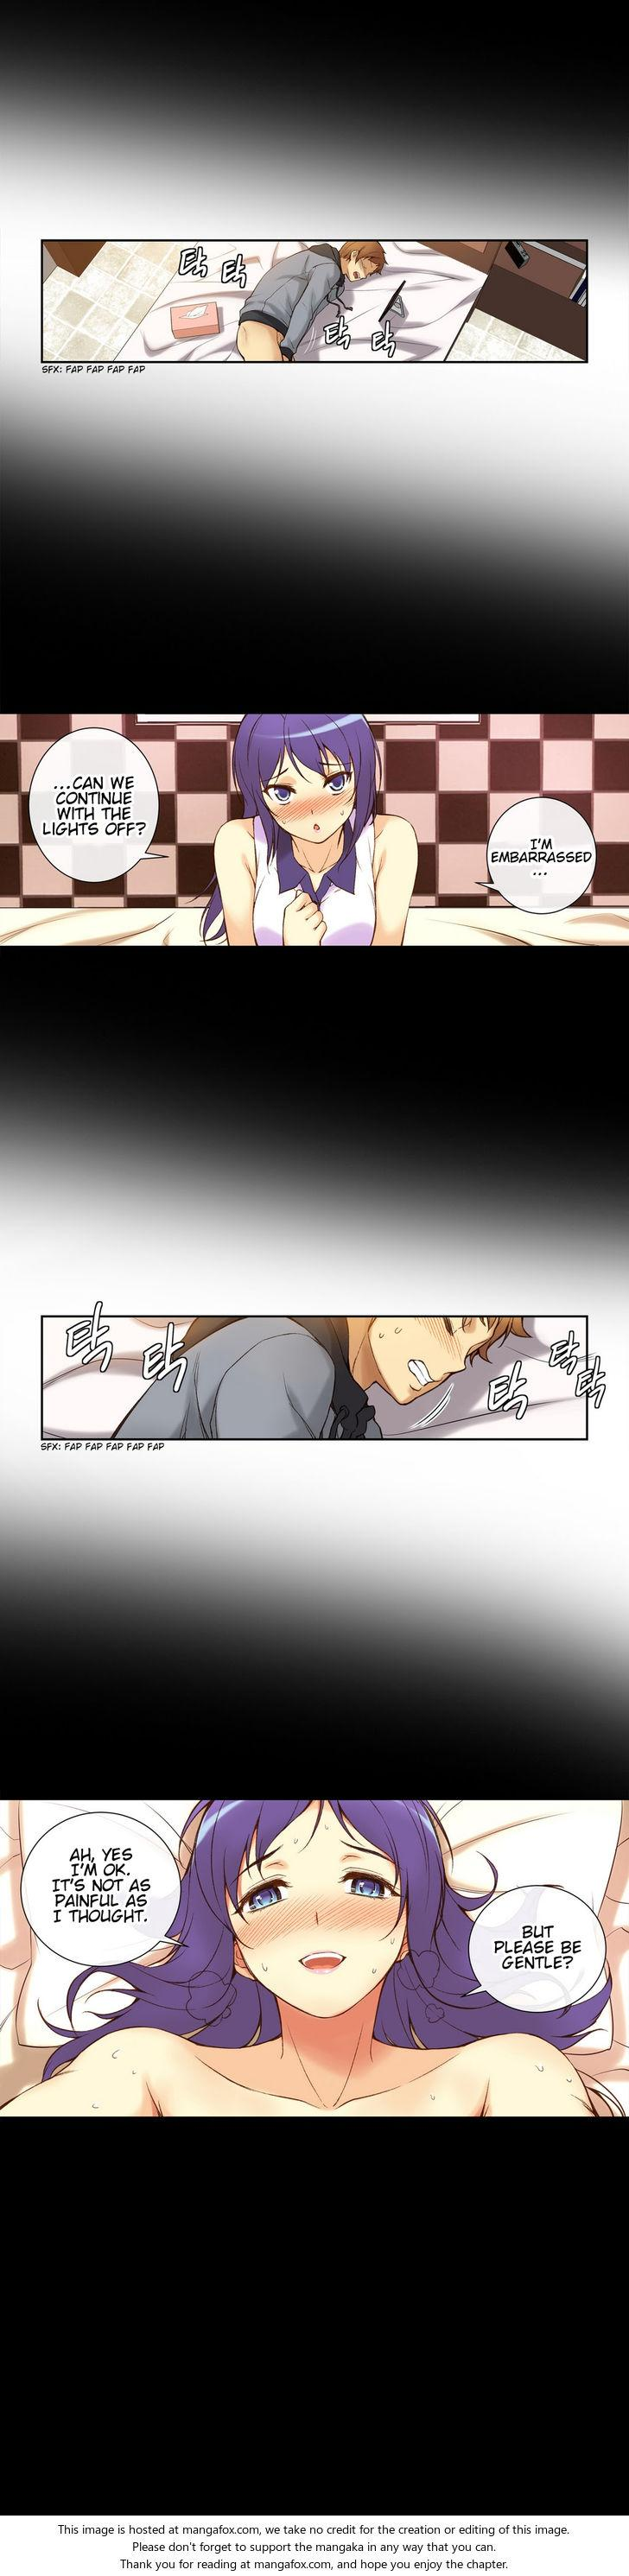 [Donggul Gom] She is Young (English) Part 1/2 12